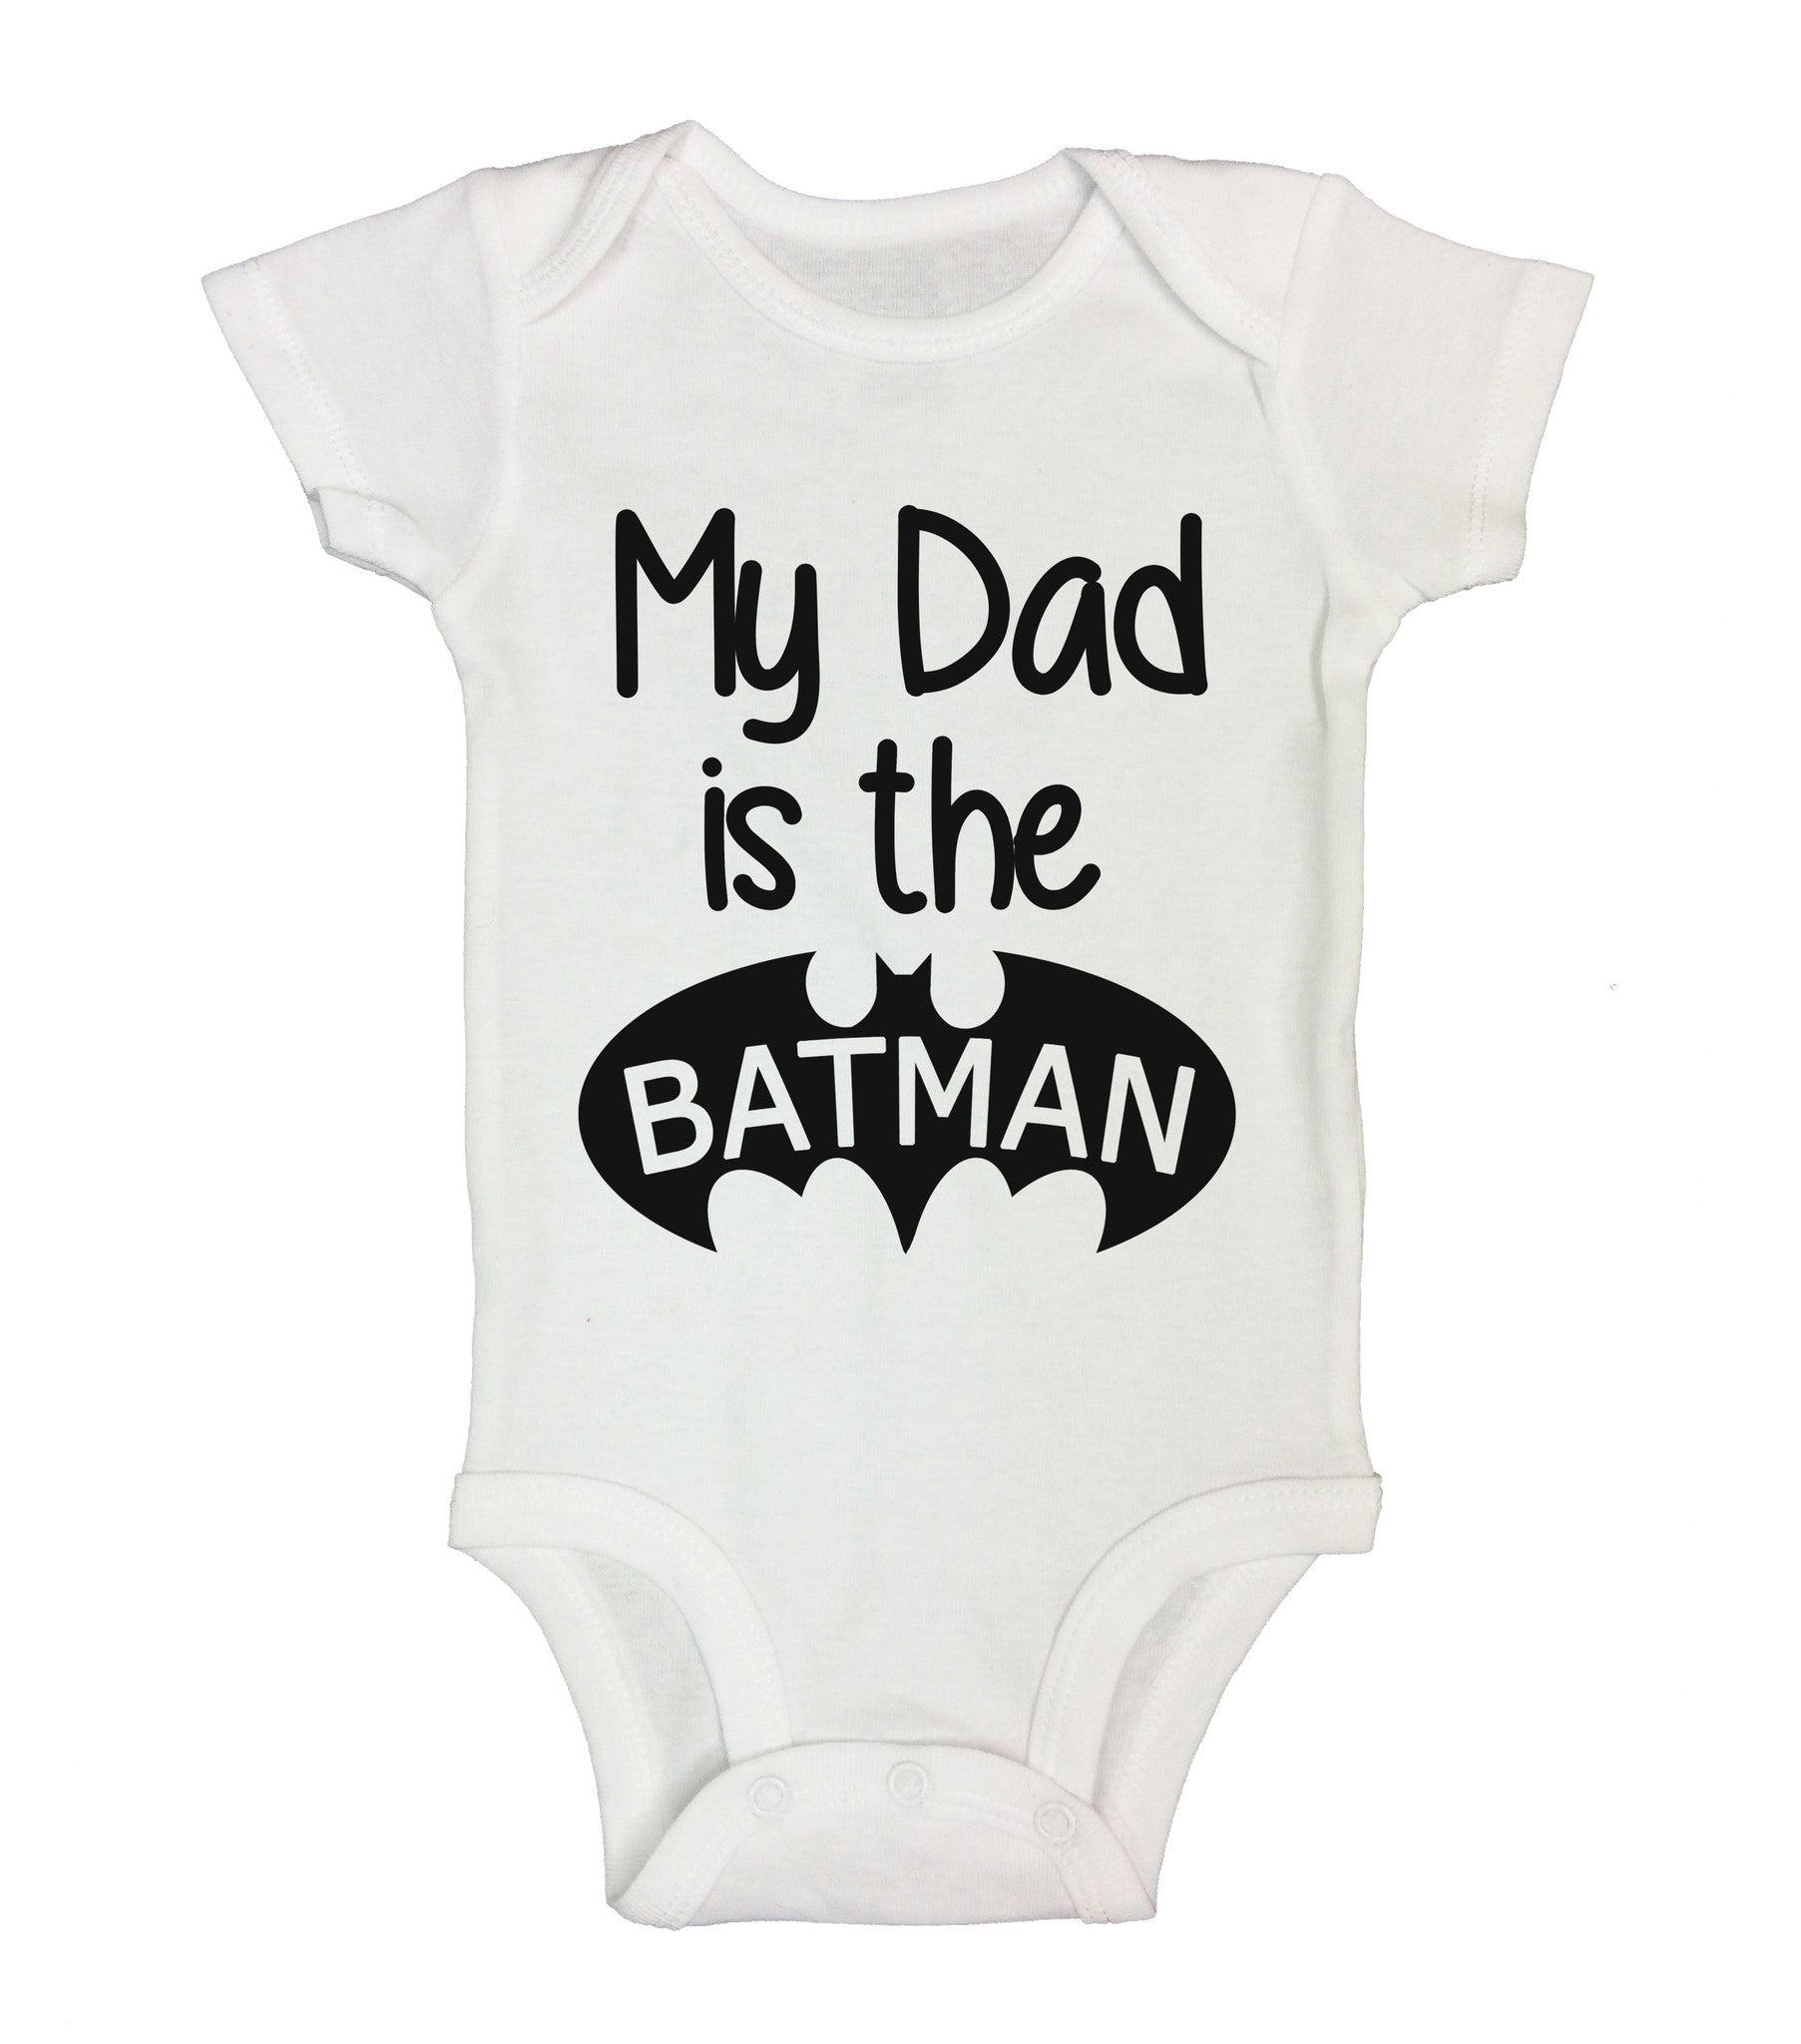 My Dad Is The Batman Funny Kids Onesie - B158 - Funny Shirts Tank Tops Burnouts and Triblends  - 2